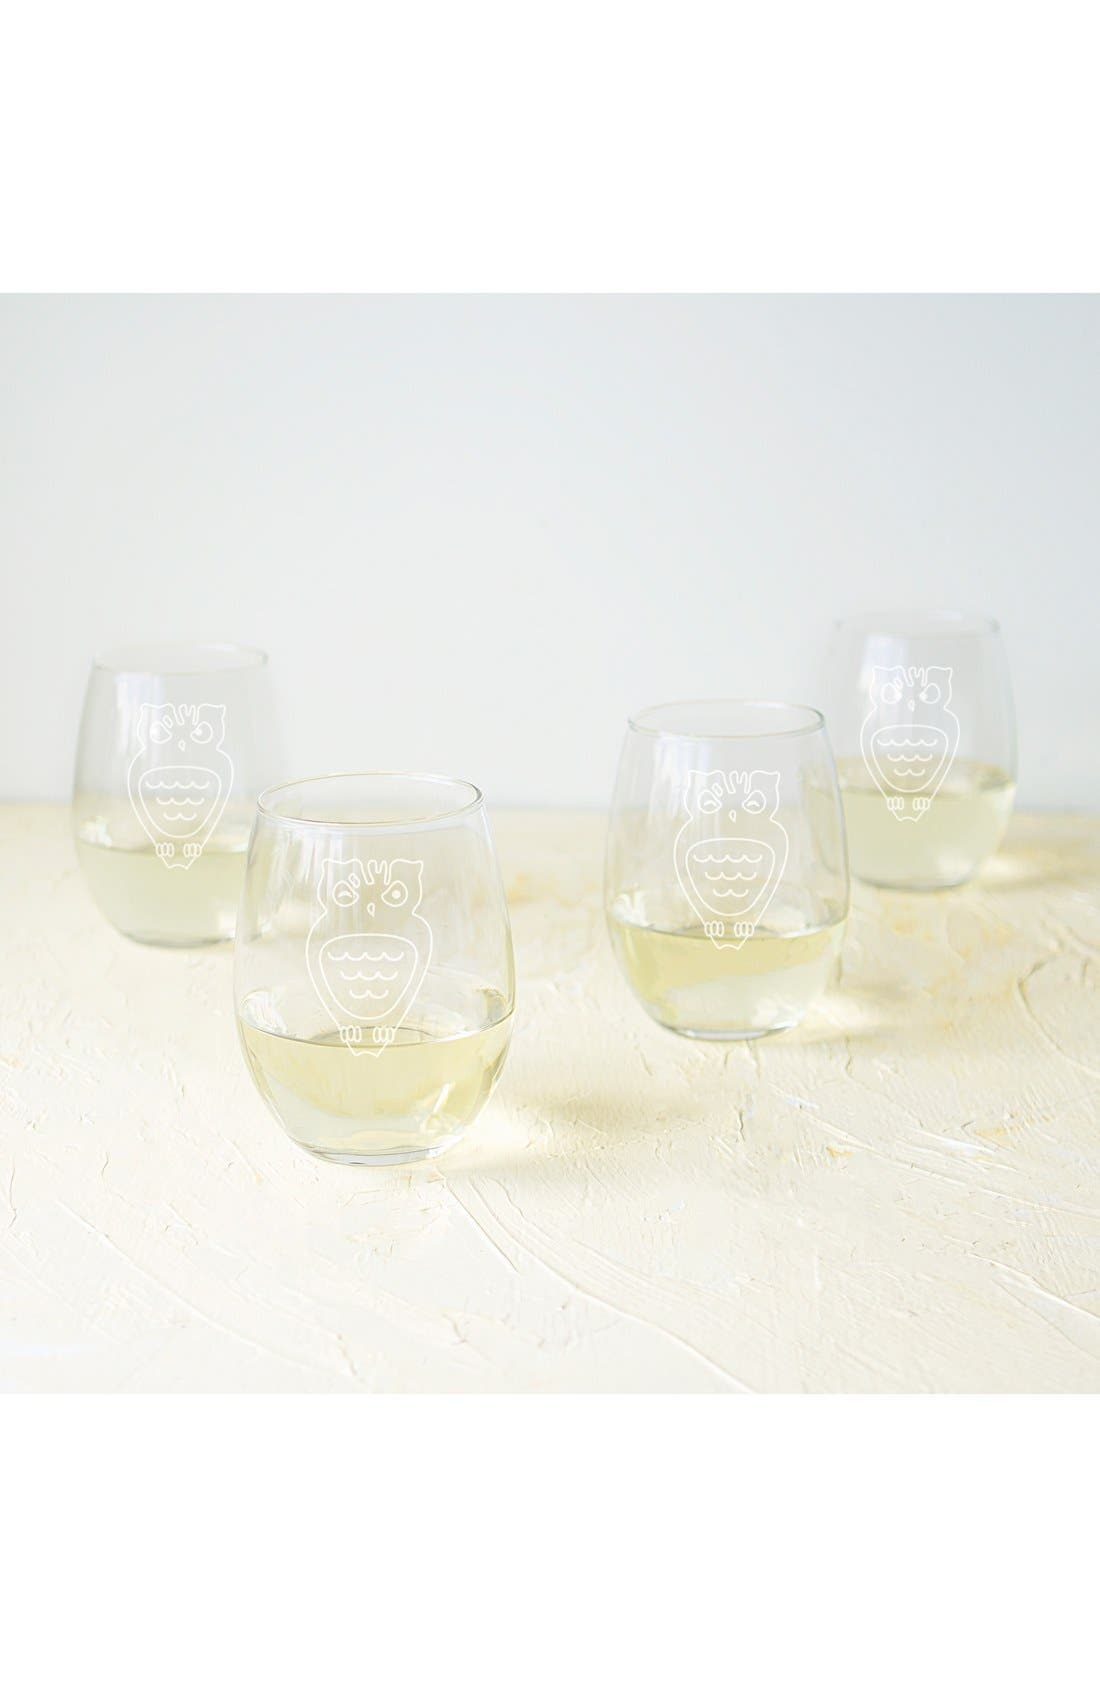 Cathy's Concepts Owl Set of 4 Stemless Wine Glasses